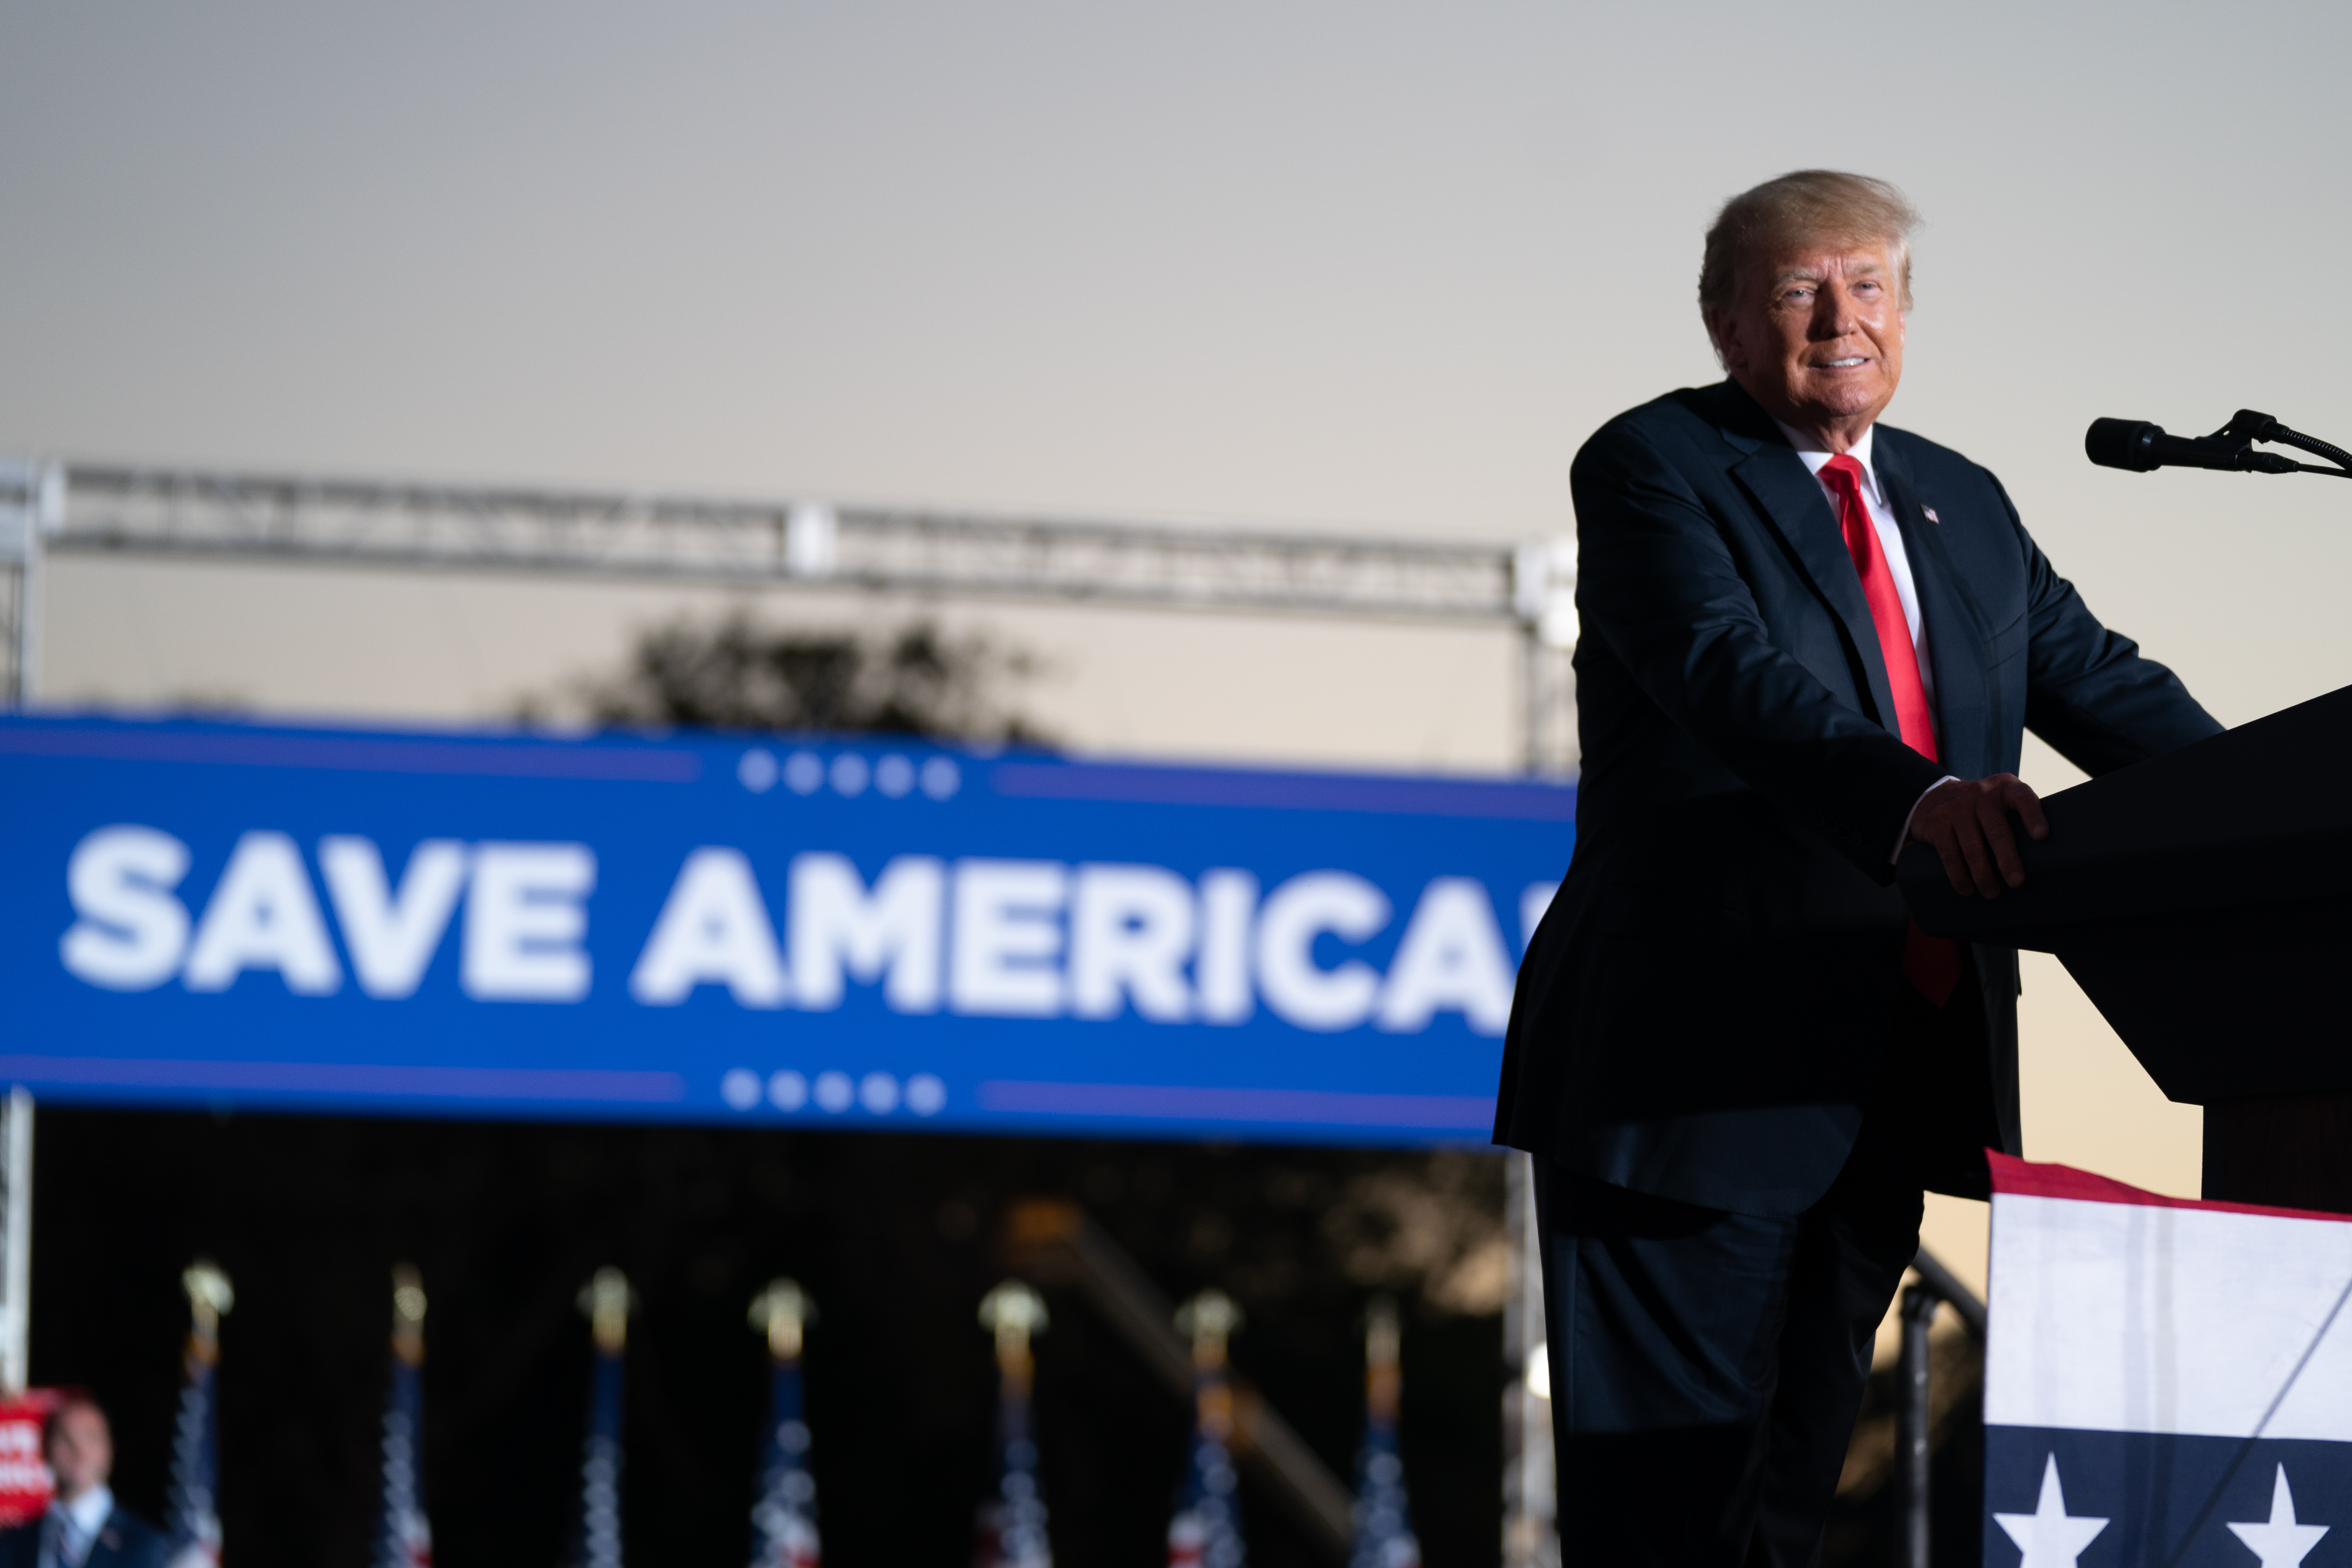 President Donald Trump speaks at a rally on September 25, 2021 in Perry, Georgia. (Photo by Sean Rayford/Getty Images)